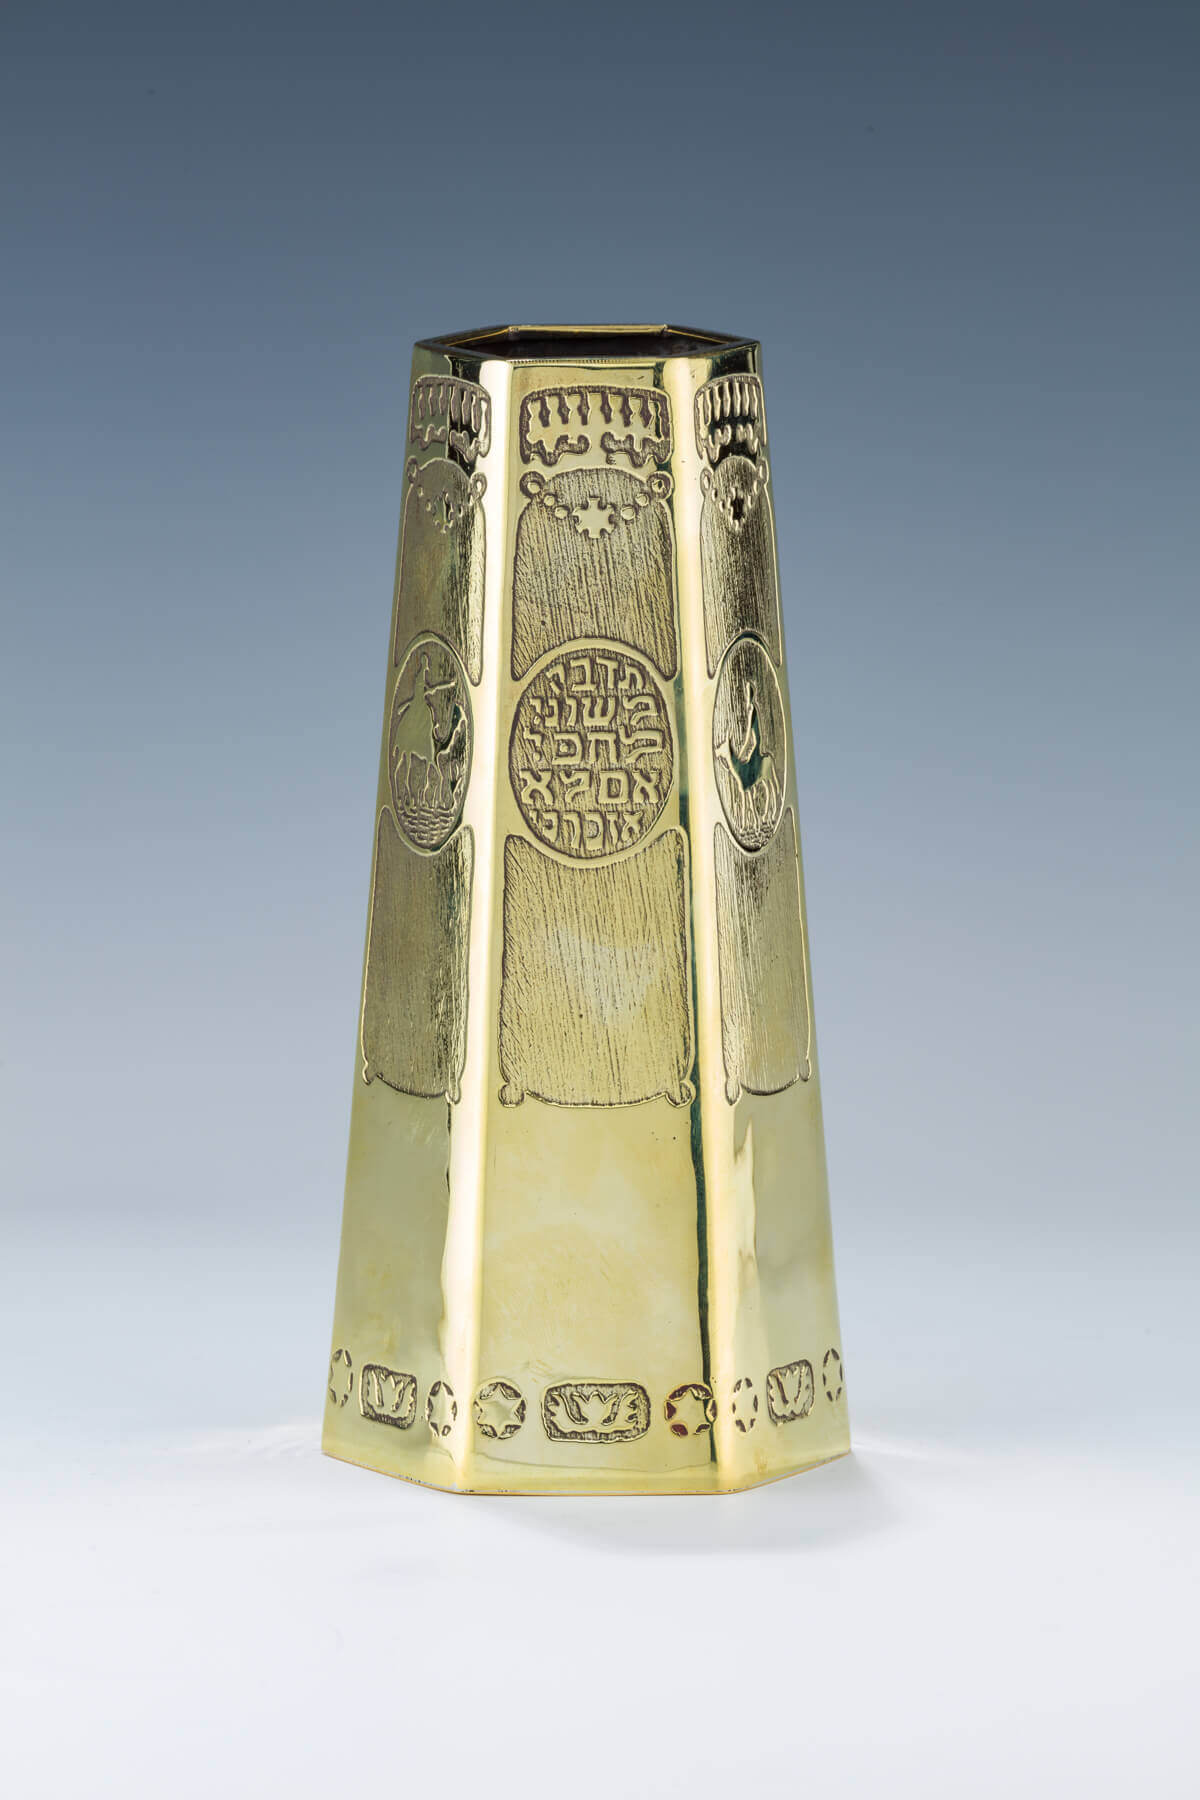 015. AN EARLY BEZALEL BRASS VASE